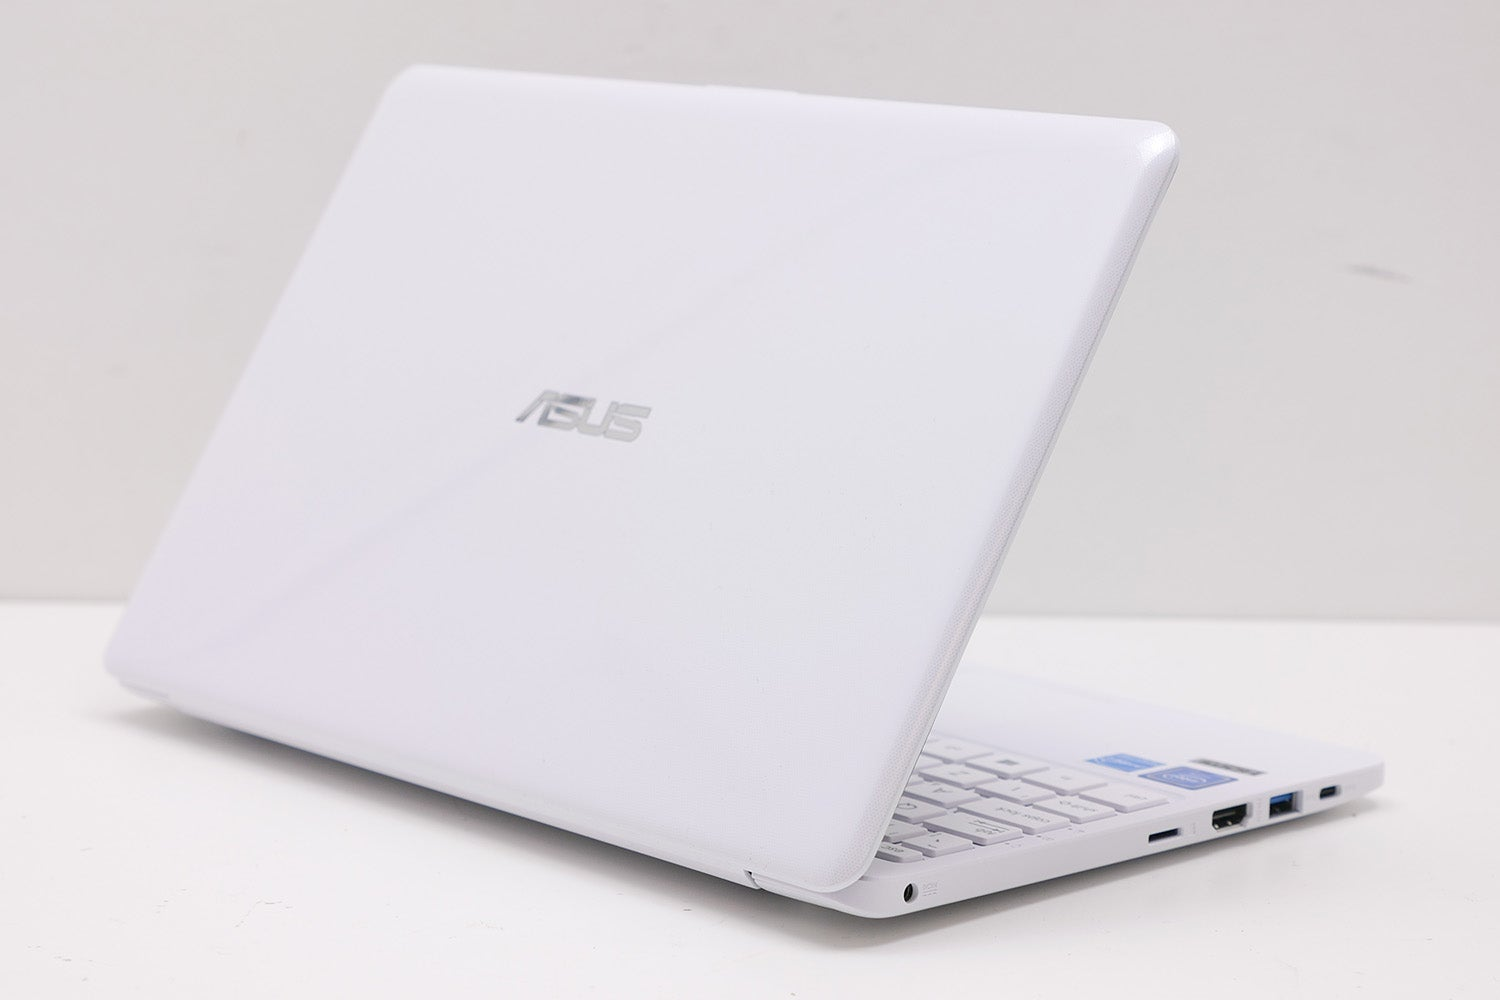 Asus VivoBook E12 E203NA Review | Trusted Reviews